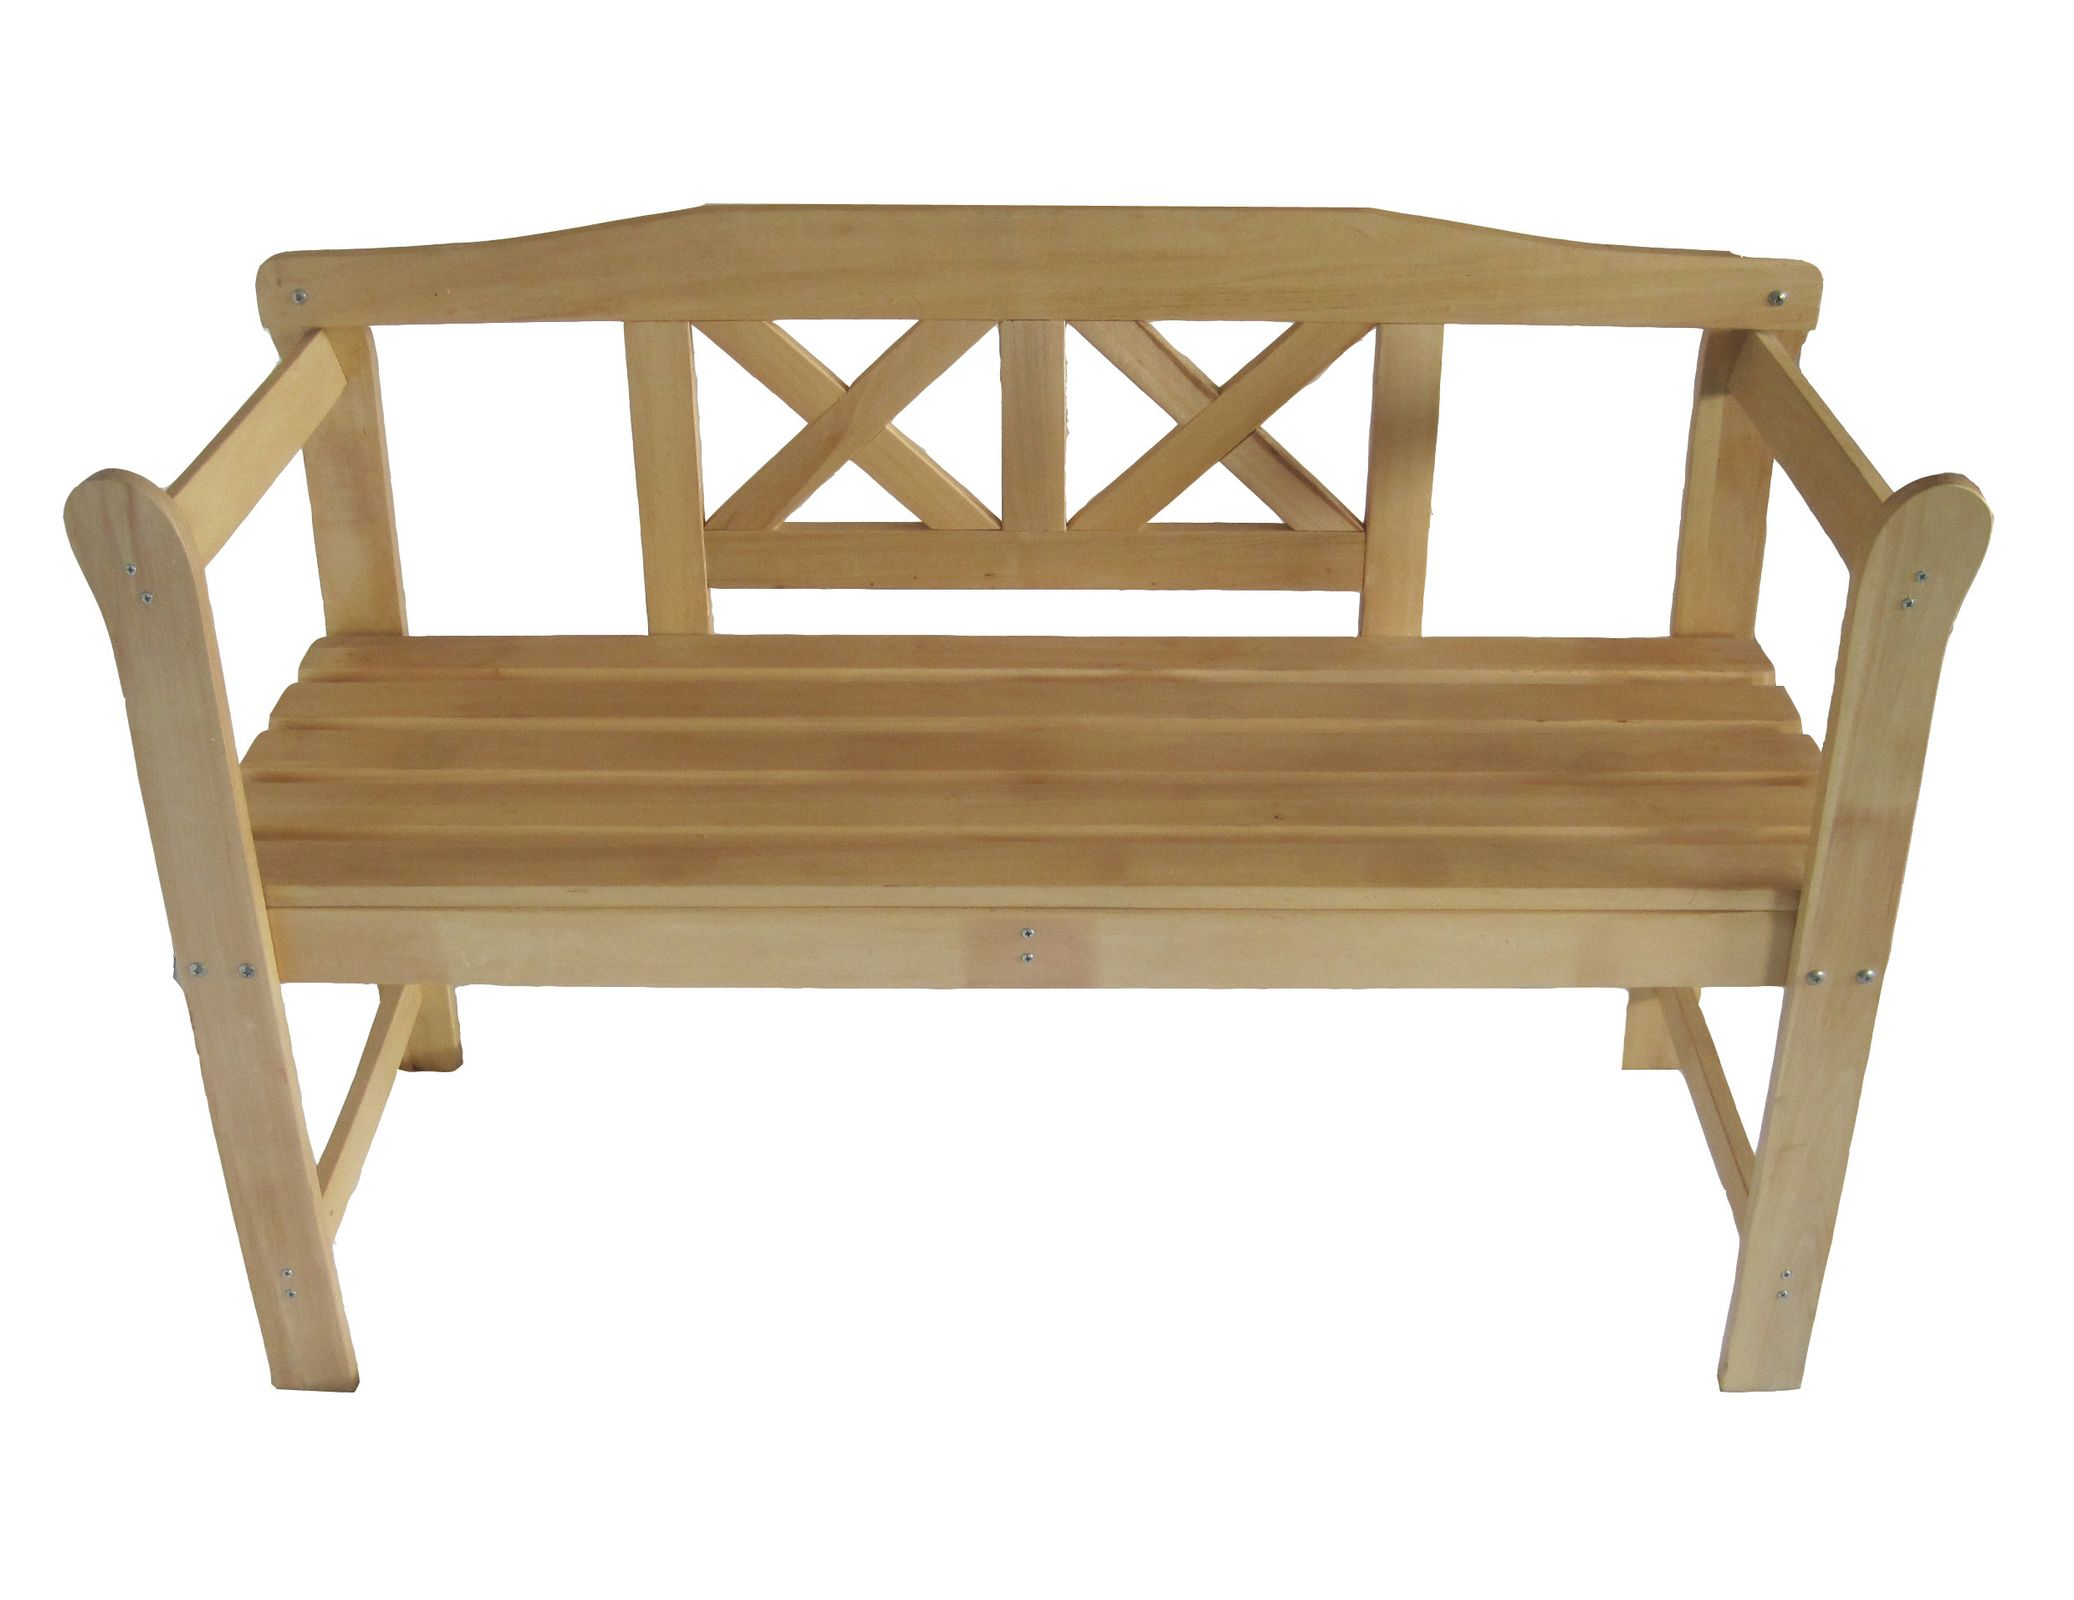 Outdoor home wooden 2 seat seater garden bench furniture patio park hardwood 072 ebay Wooden furniture pics